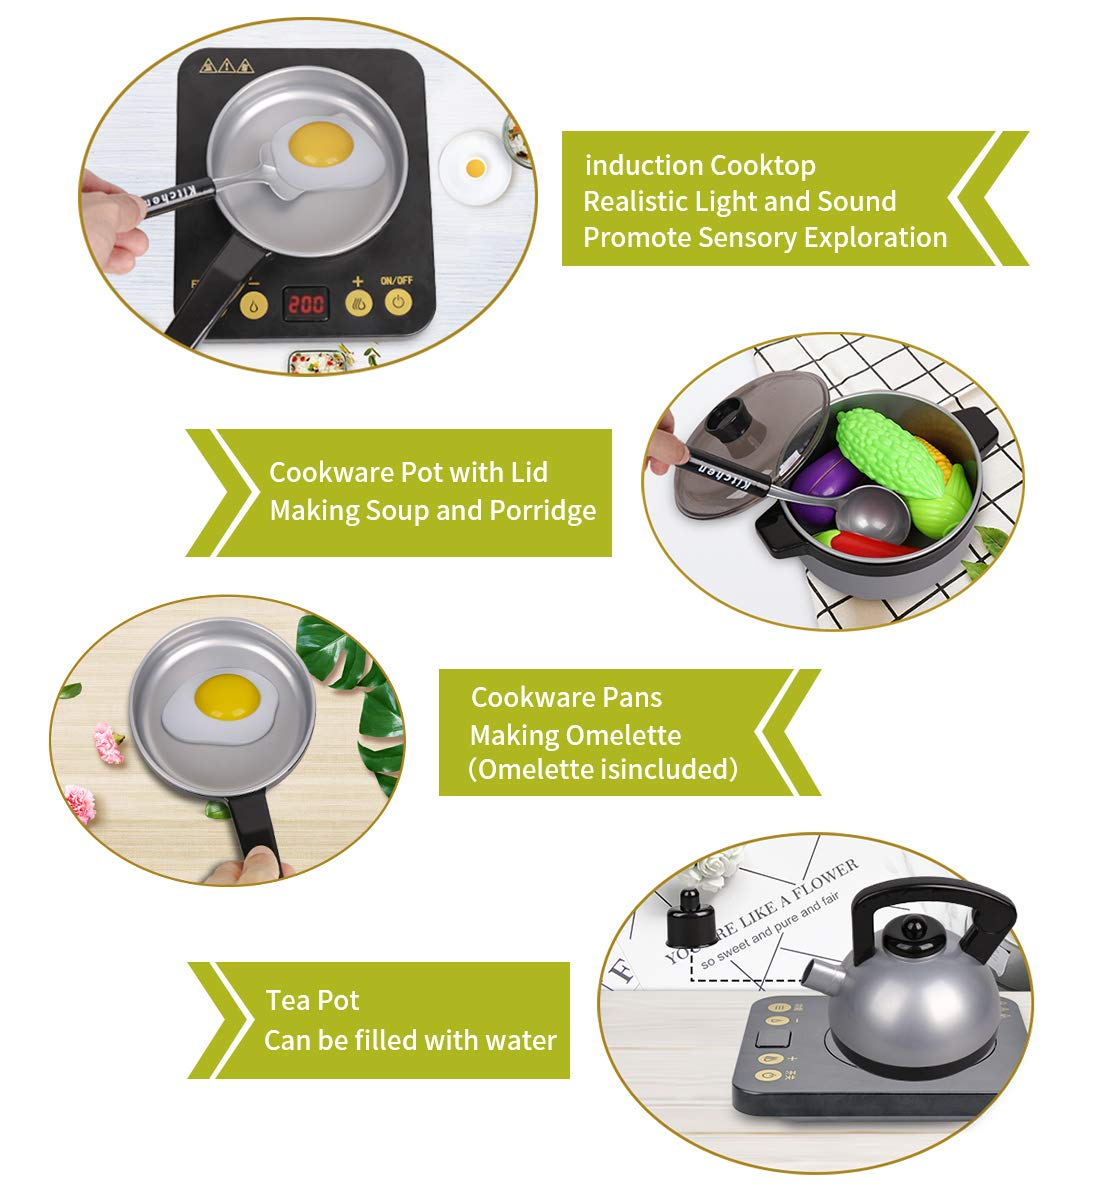 Kids Kitchen Pretend Play Set - 29Pcs Kitchen Toys Including Induction Cooker with Light Sound, Apron&Chef Hat, Cookware Utensils, Cutting Food Playset Accessories for Toddlers Girls Boy Birthday Gift